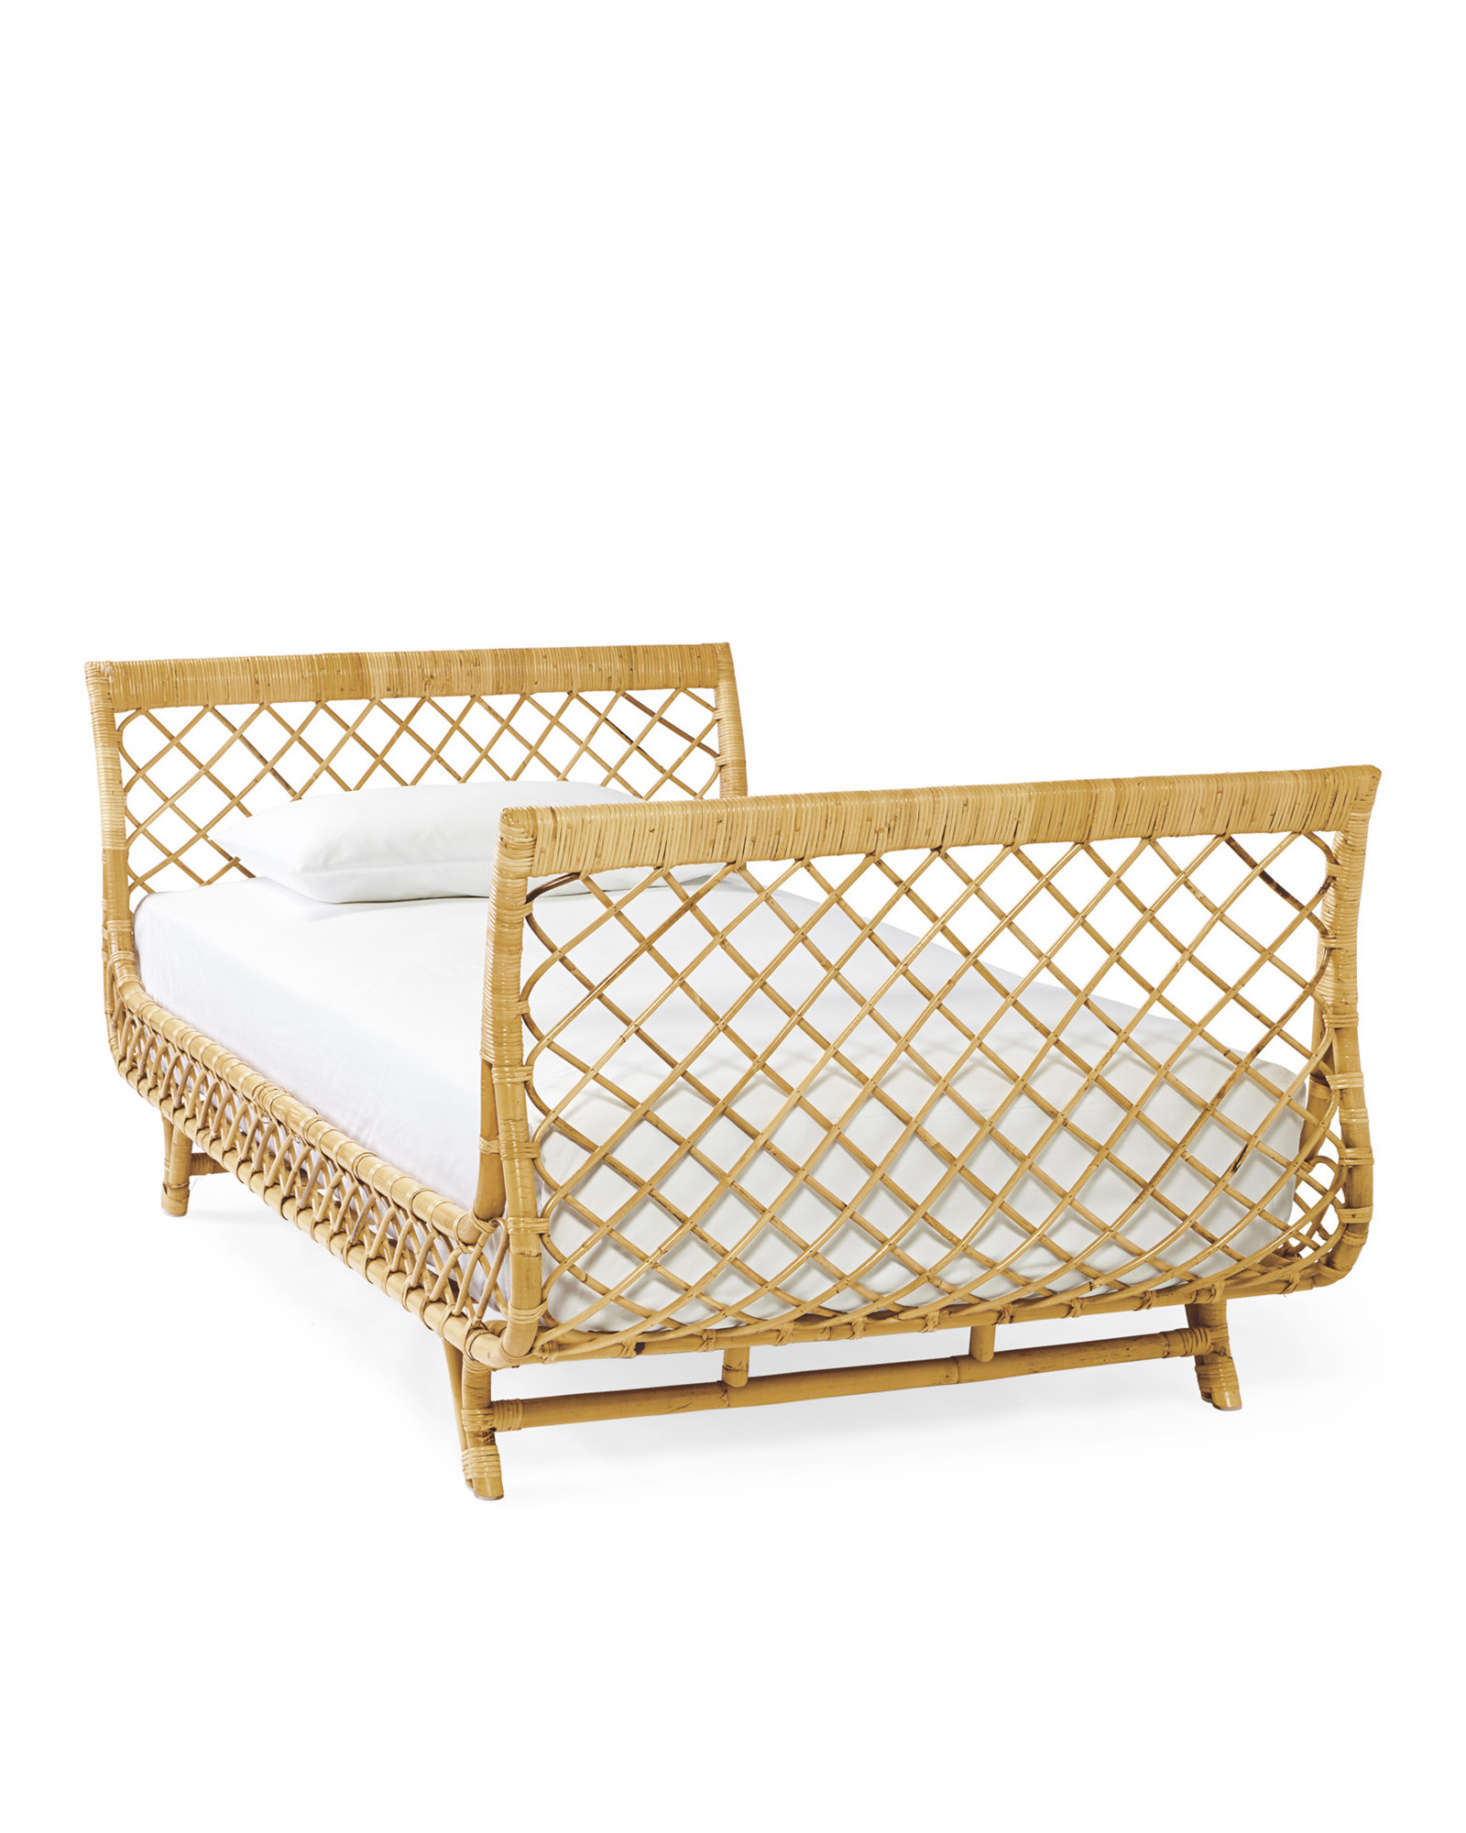 Another Serena & Lily option, the Avalon Daybed, $src=